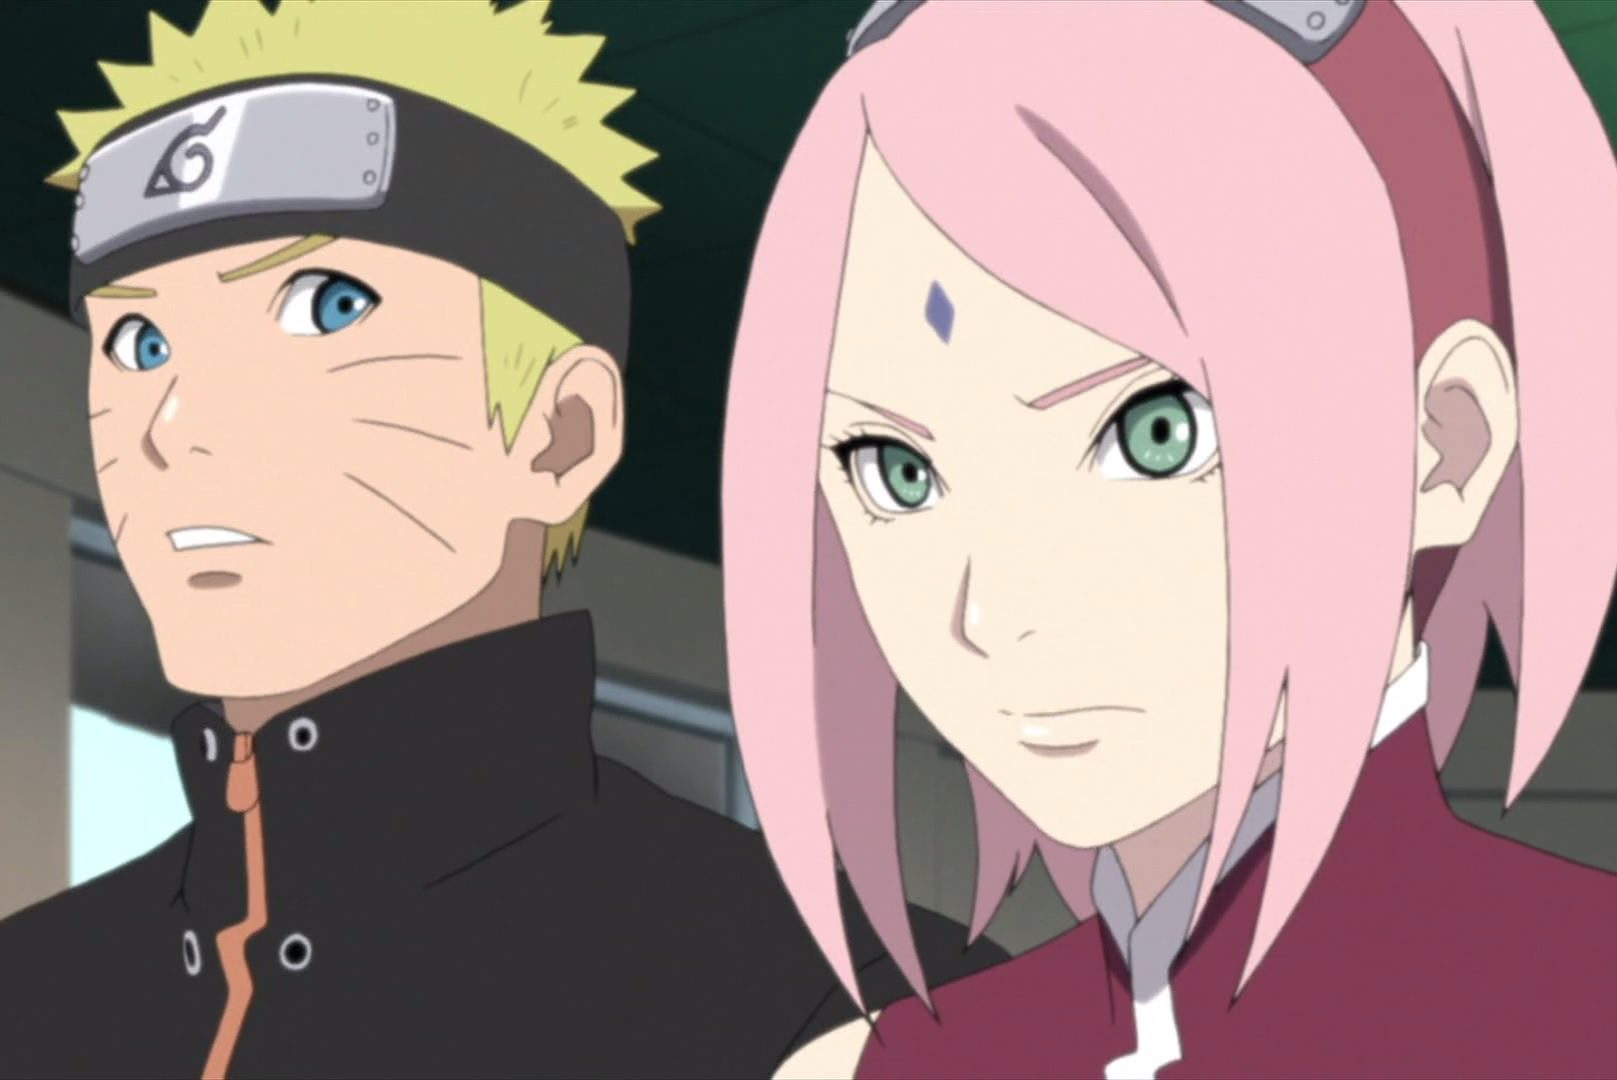 Sakura with Naruto from the anime Naruto